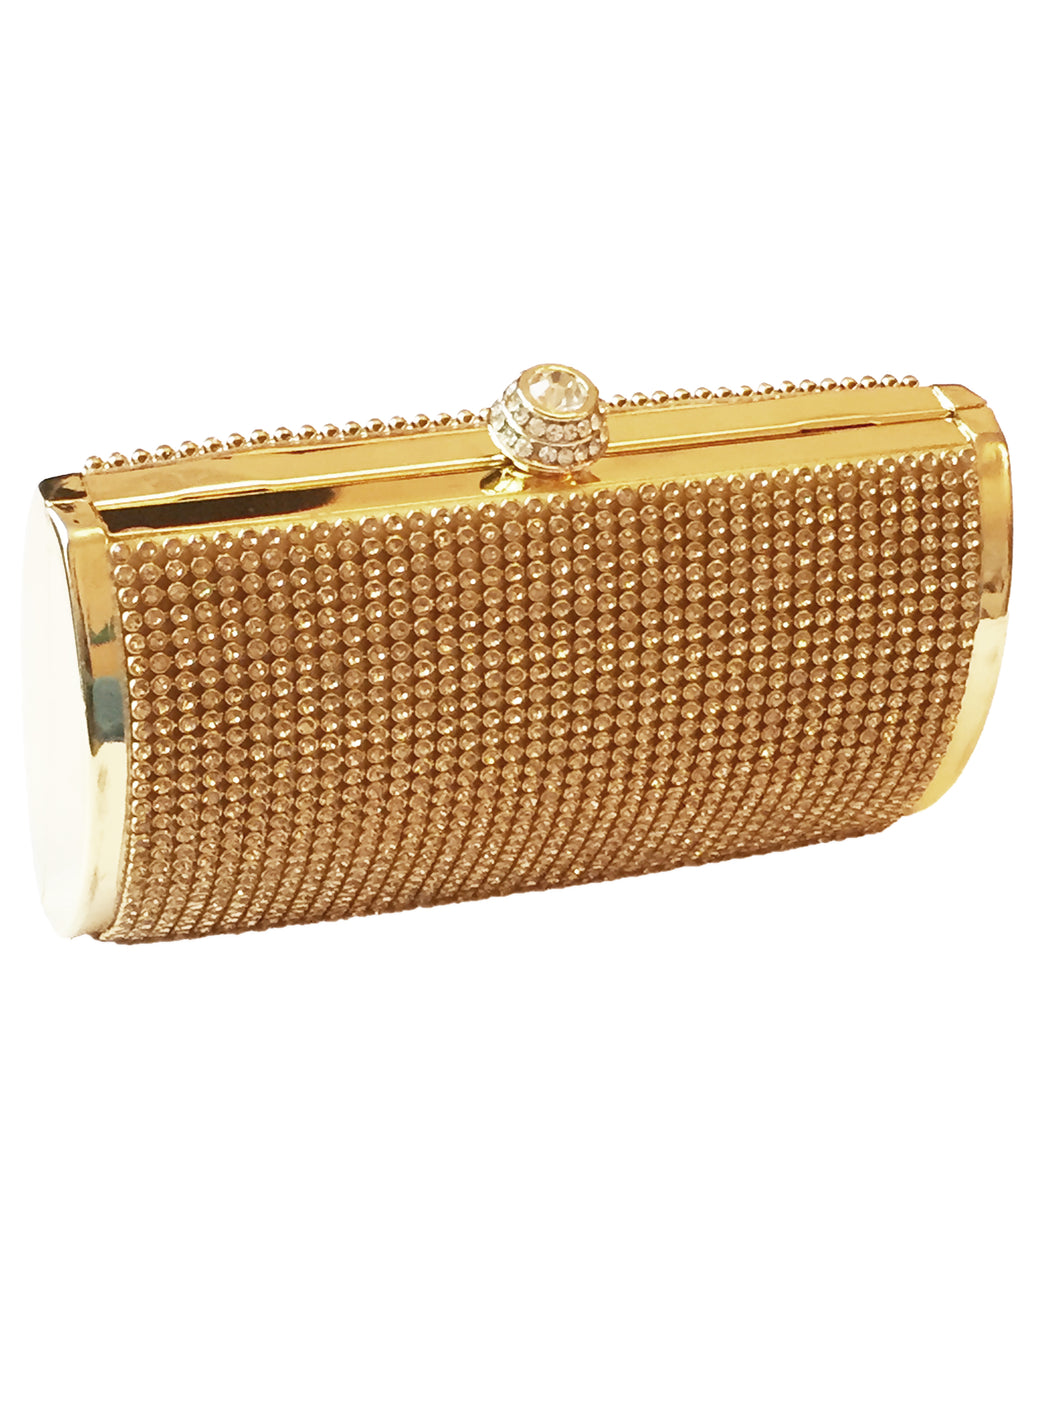 Gold Crystal Clutch Bag, This Gorgeous, Glamorous Gold clutch bag portrays luxury at its finest